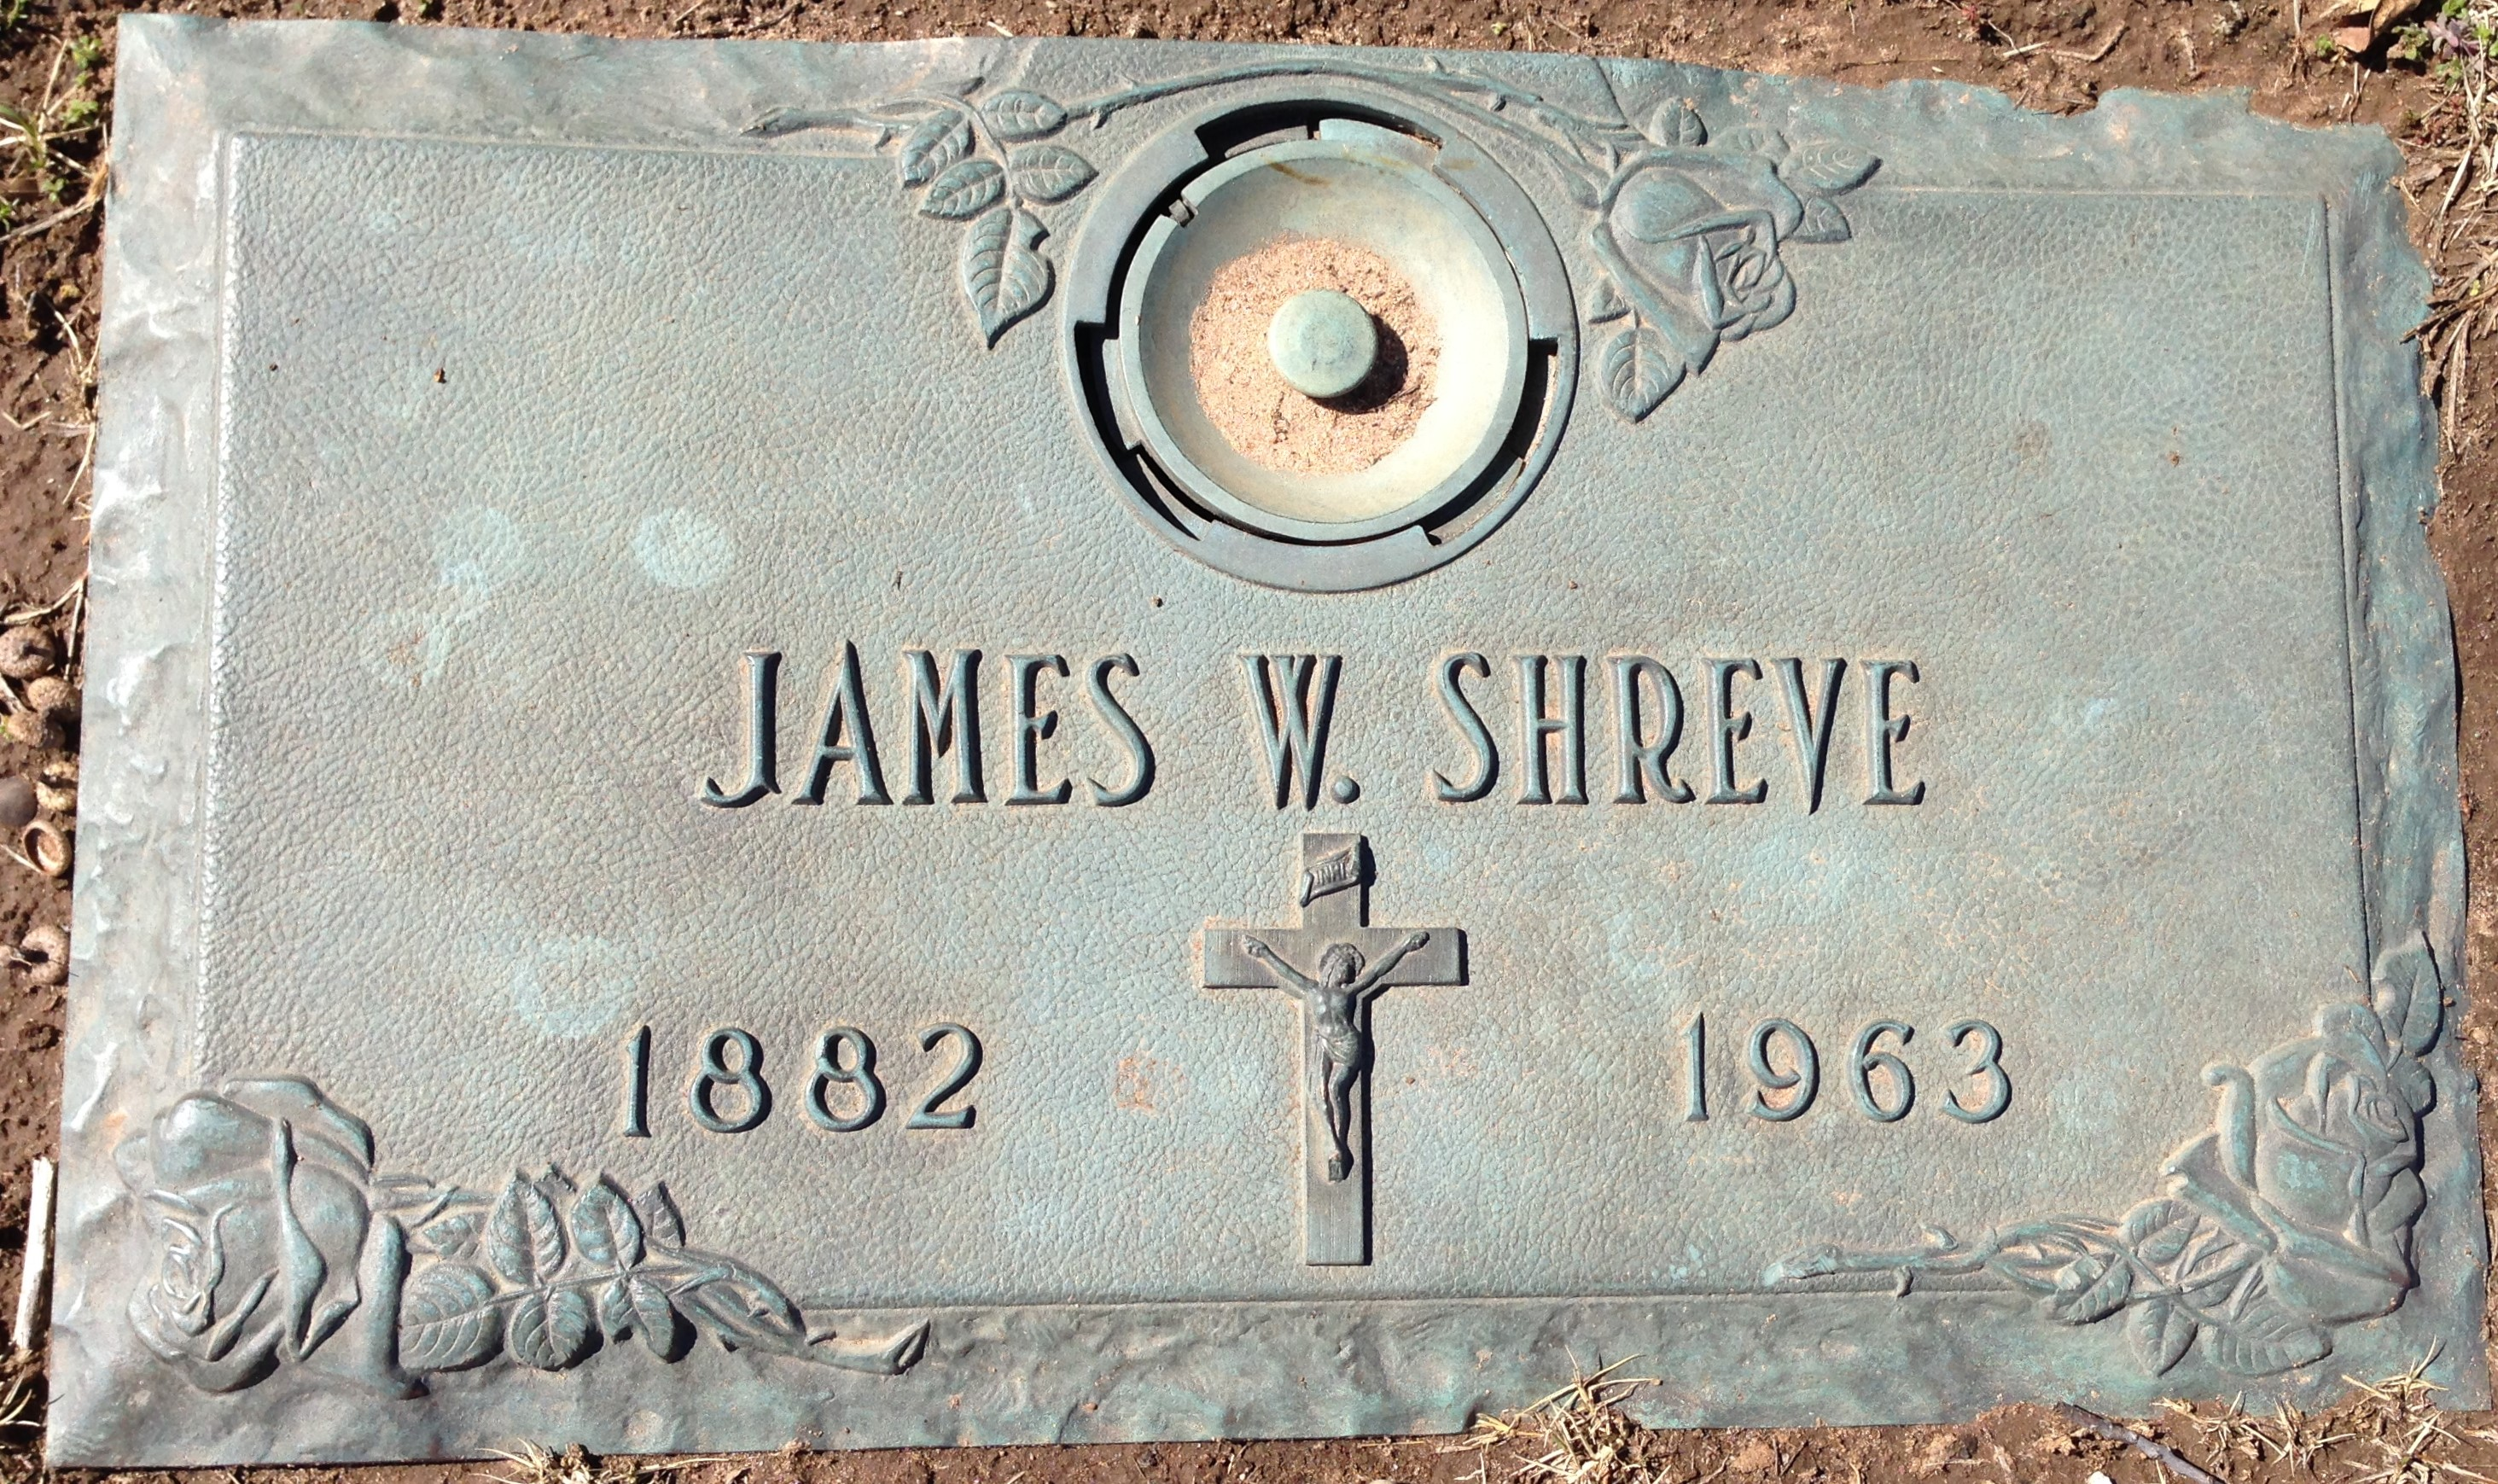 James Wesley Shreve